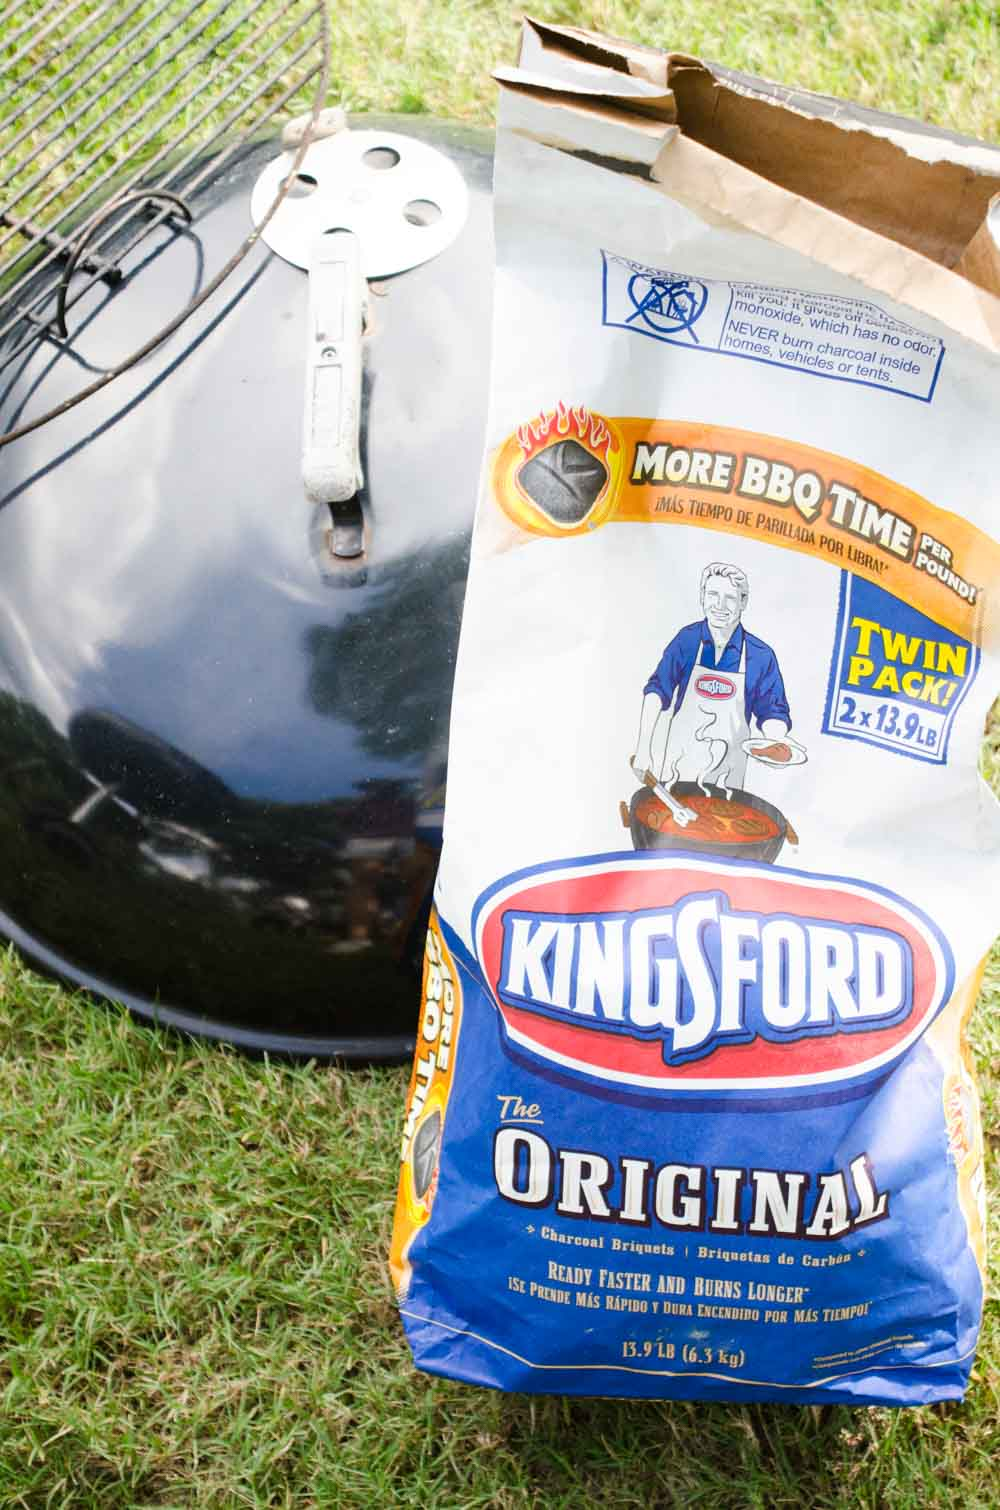 Elegant fall cookout with Clorox Kingsford Charcoal